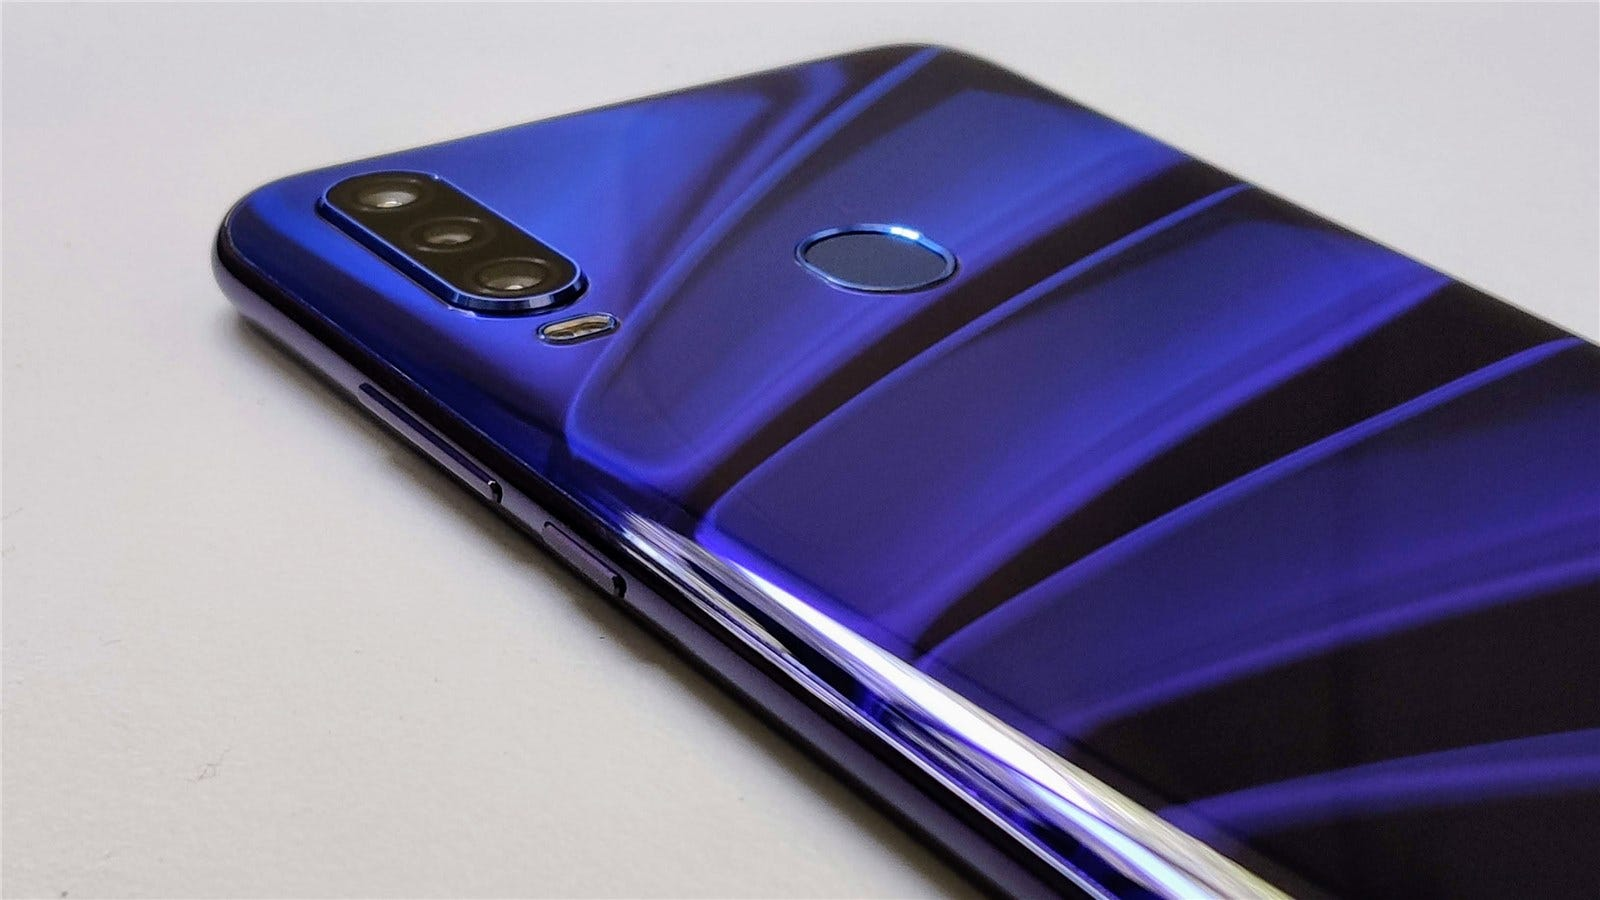 The back of the Blu G9 Pro